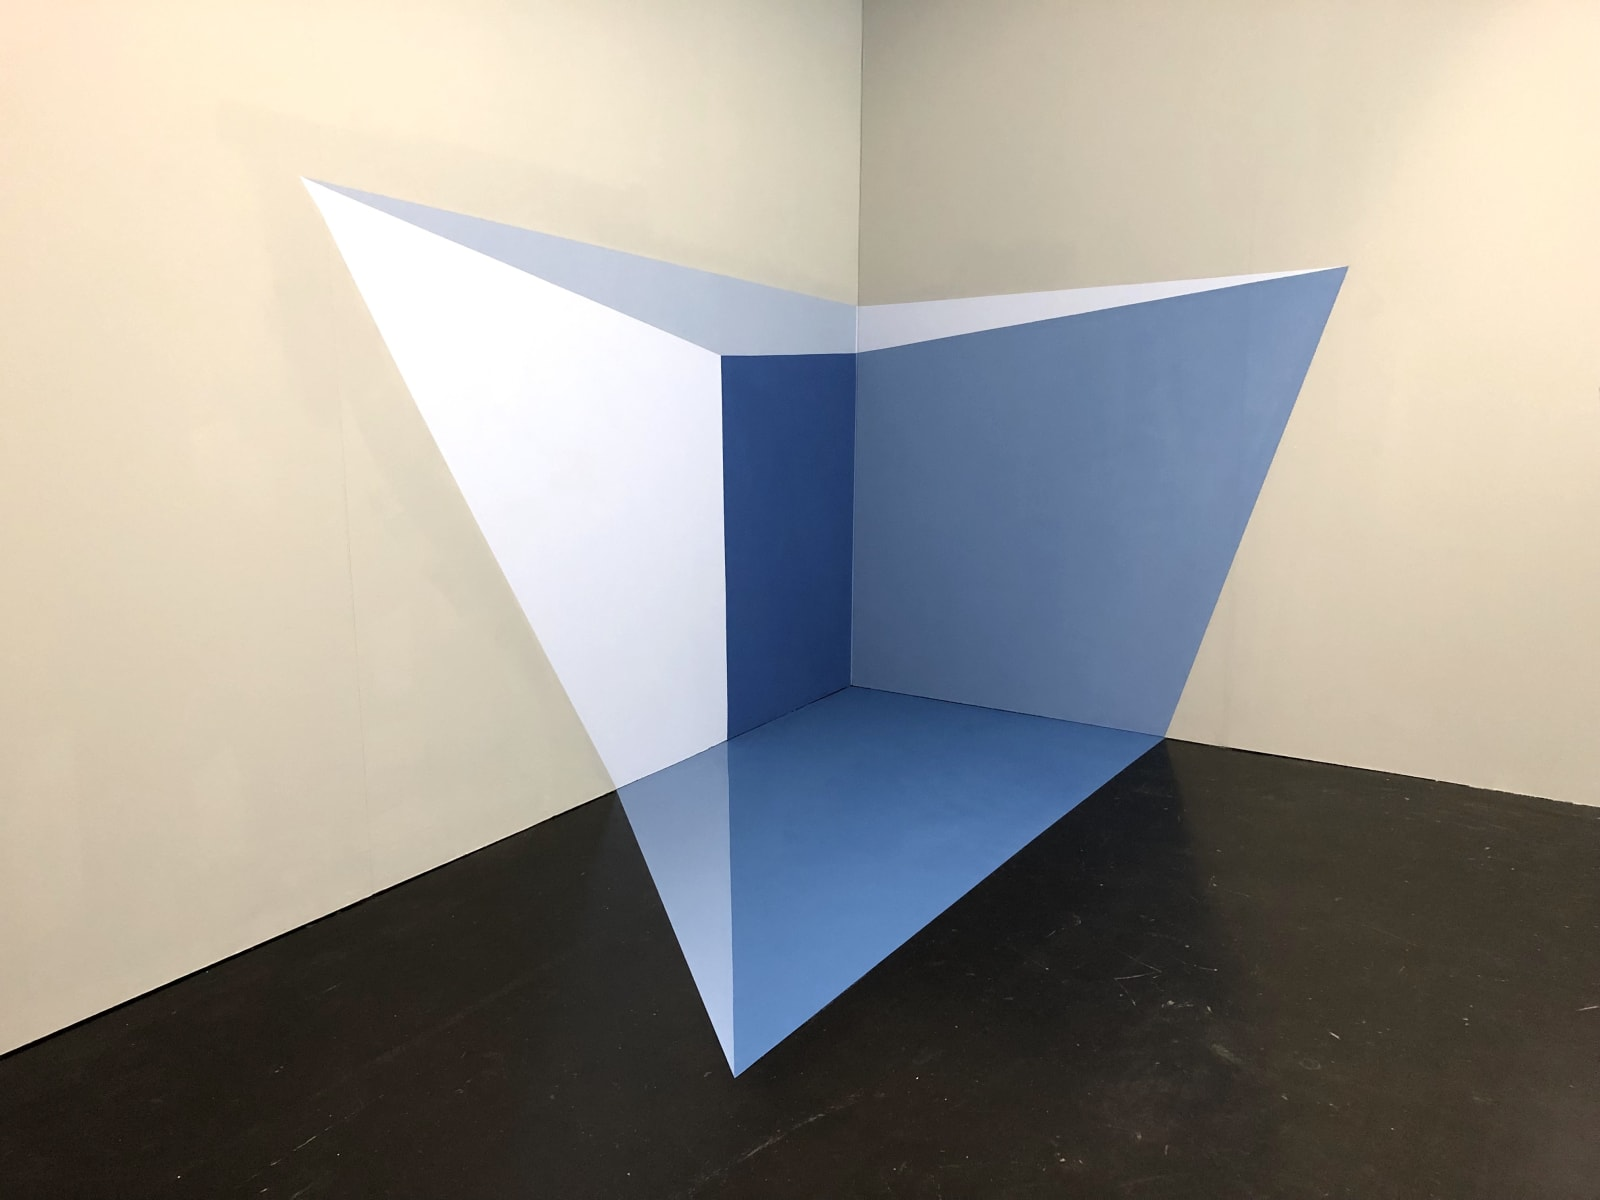 Negative Space, installation view at ZKM Center for Art and Media, Germany, 2019